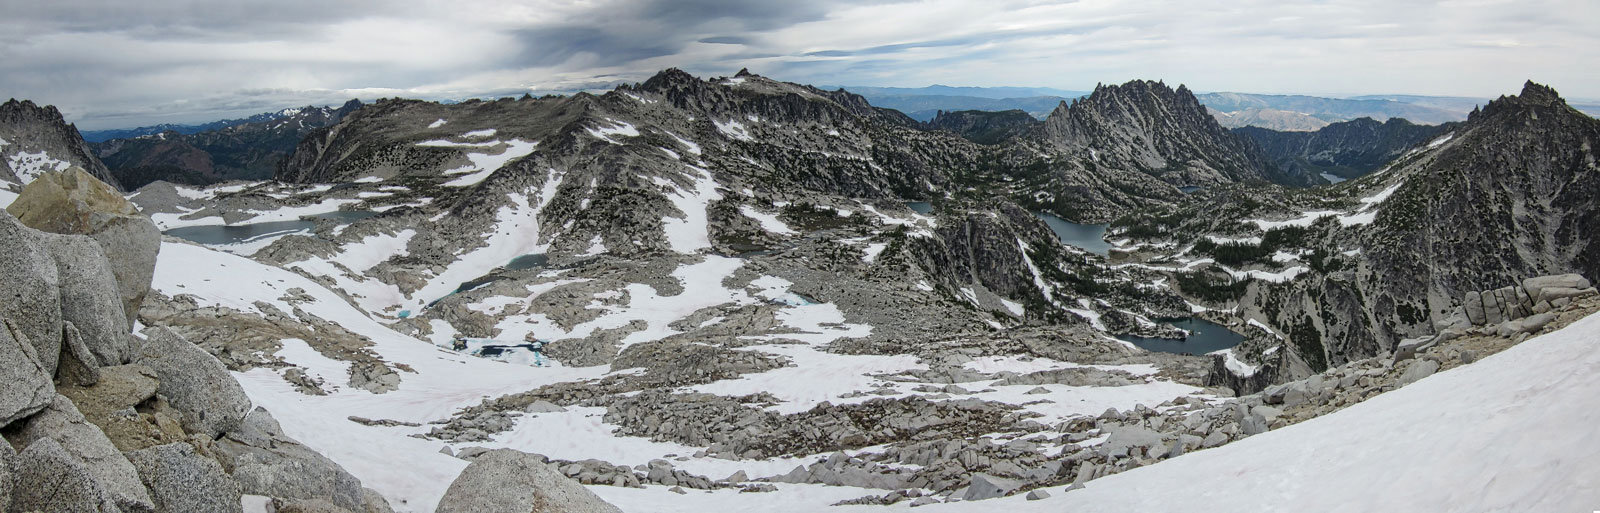 Enchantments Panorama